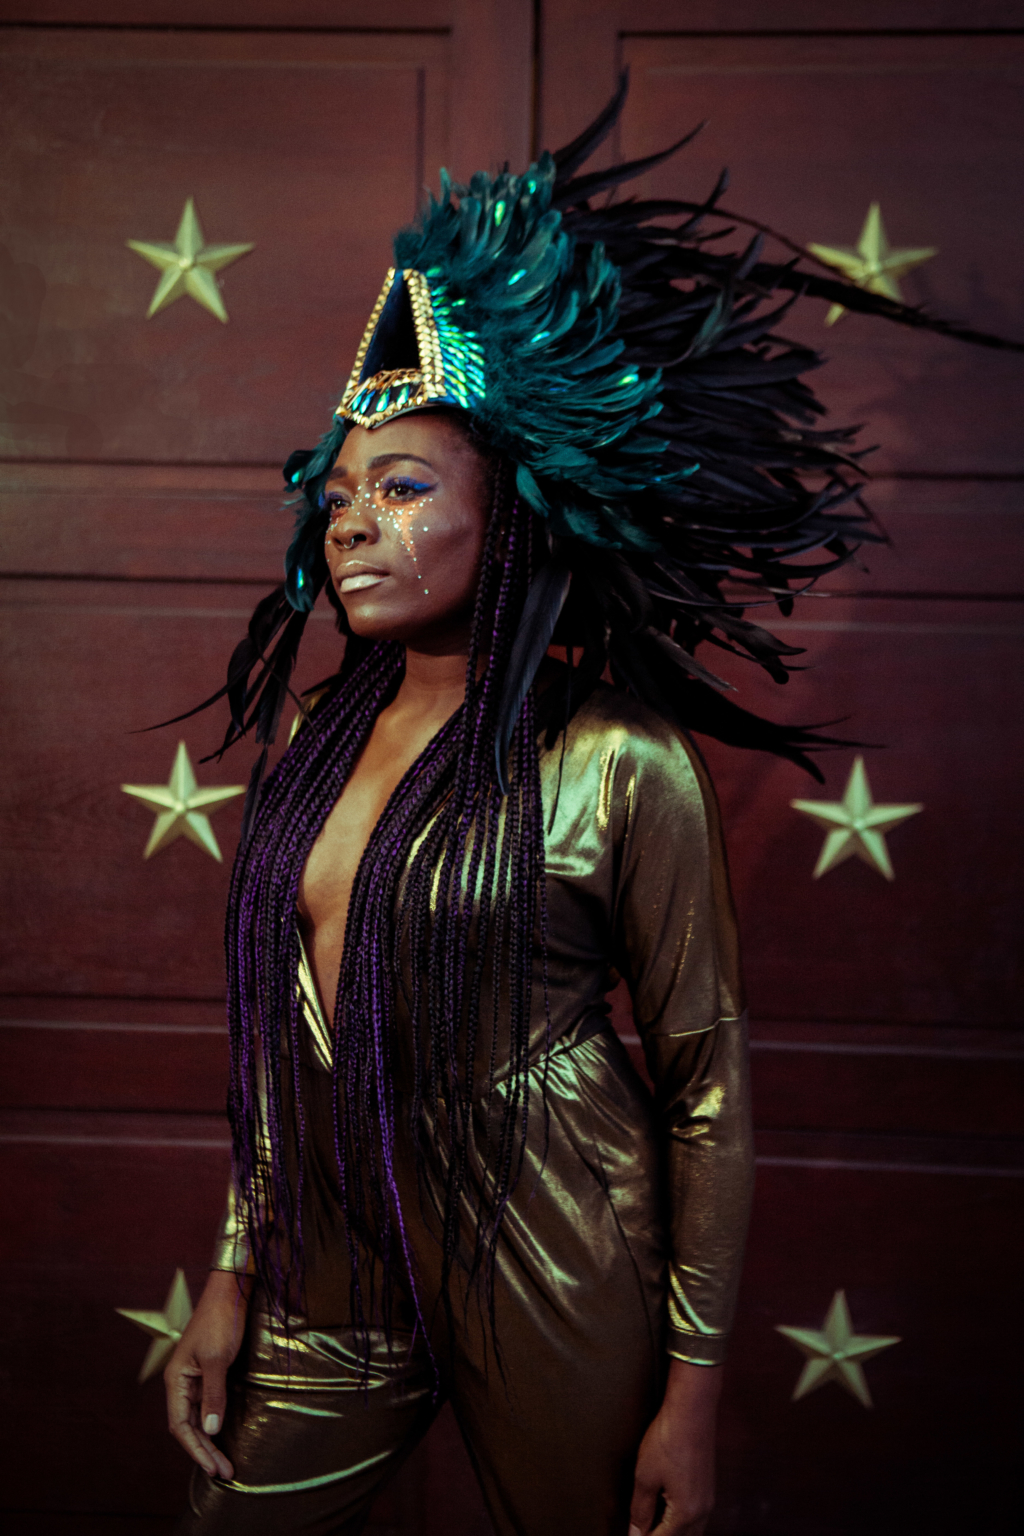 Rachael Young, NIGHTCLUBBING. Photo: Marcus Hessenberg; Stylist: Naomi Gray; Make-Up Artist: Umber Ghauri